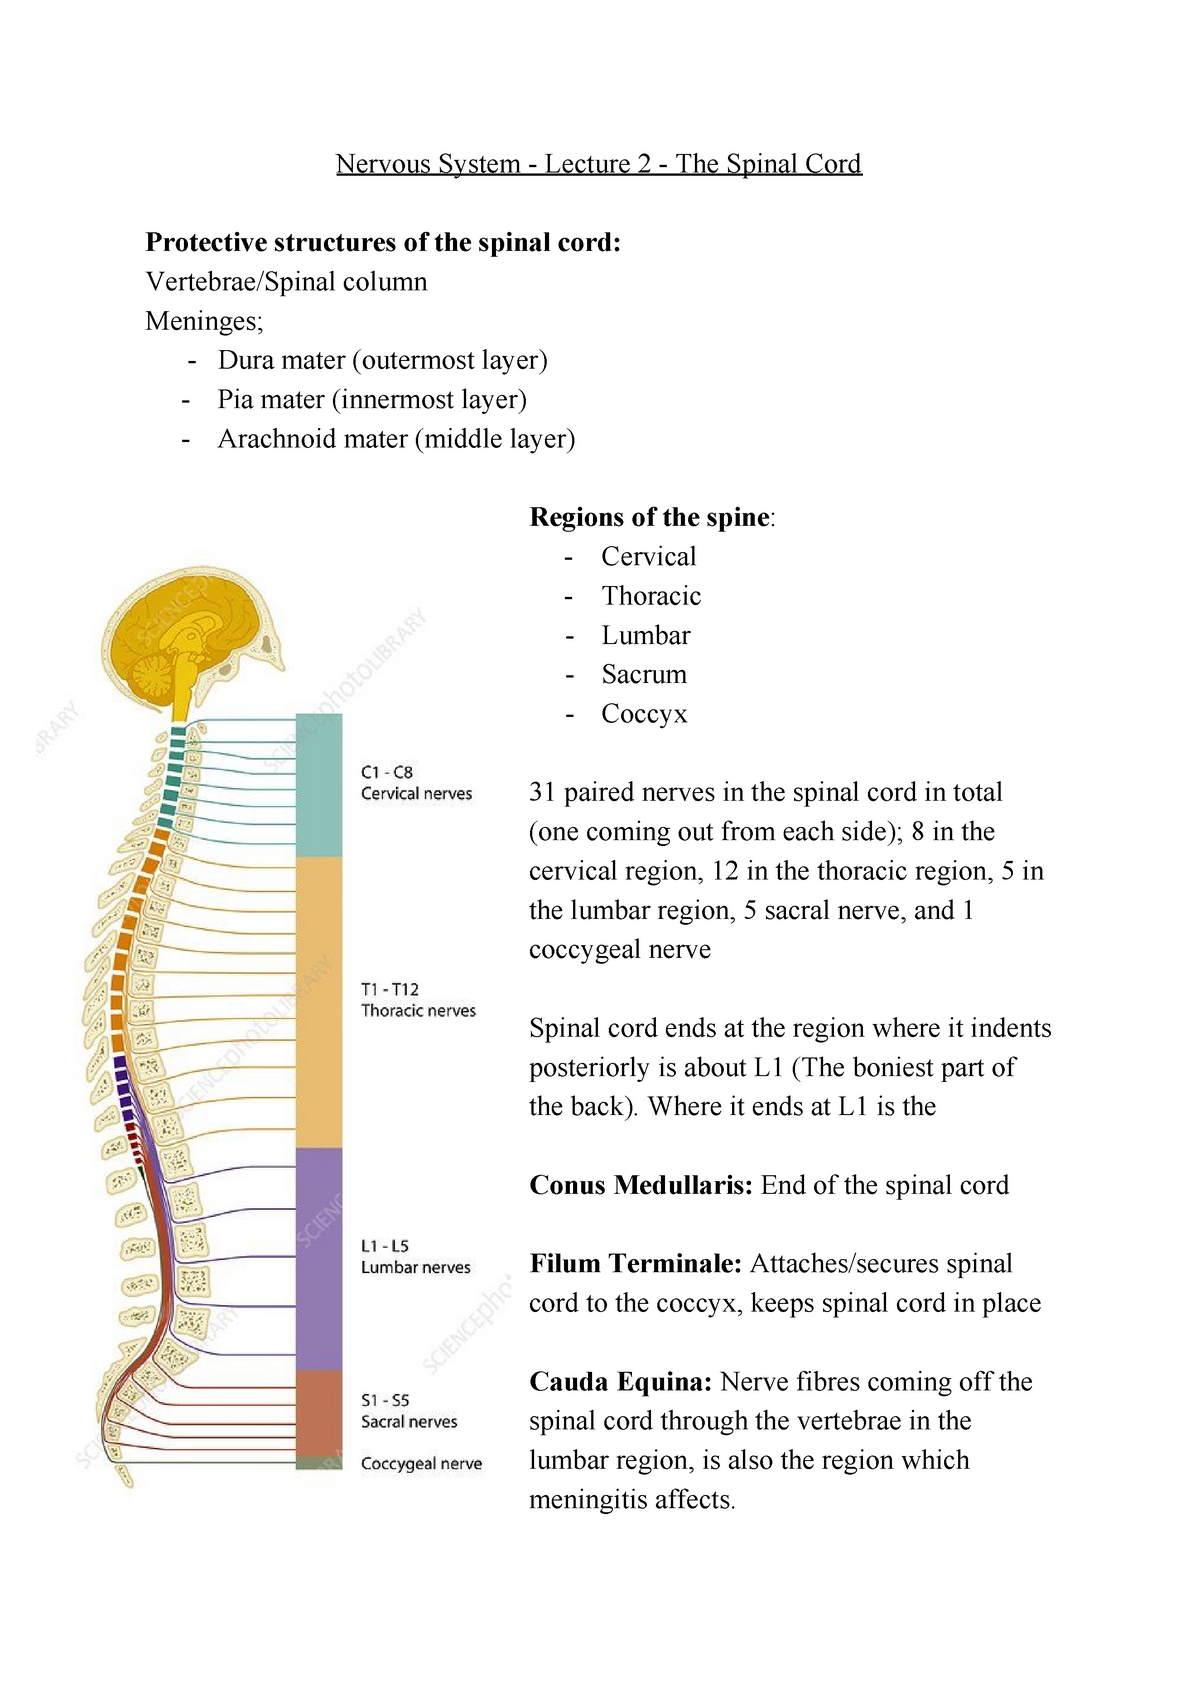 Nervous System Lecture 2 The Spinal Cord Studocu Meaning of filum terminale medical term. nervous system lecture 2 the spinal